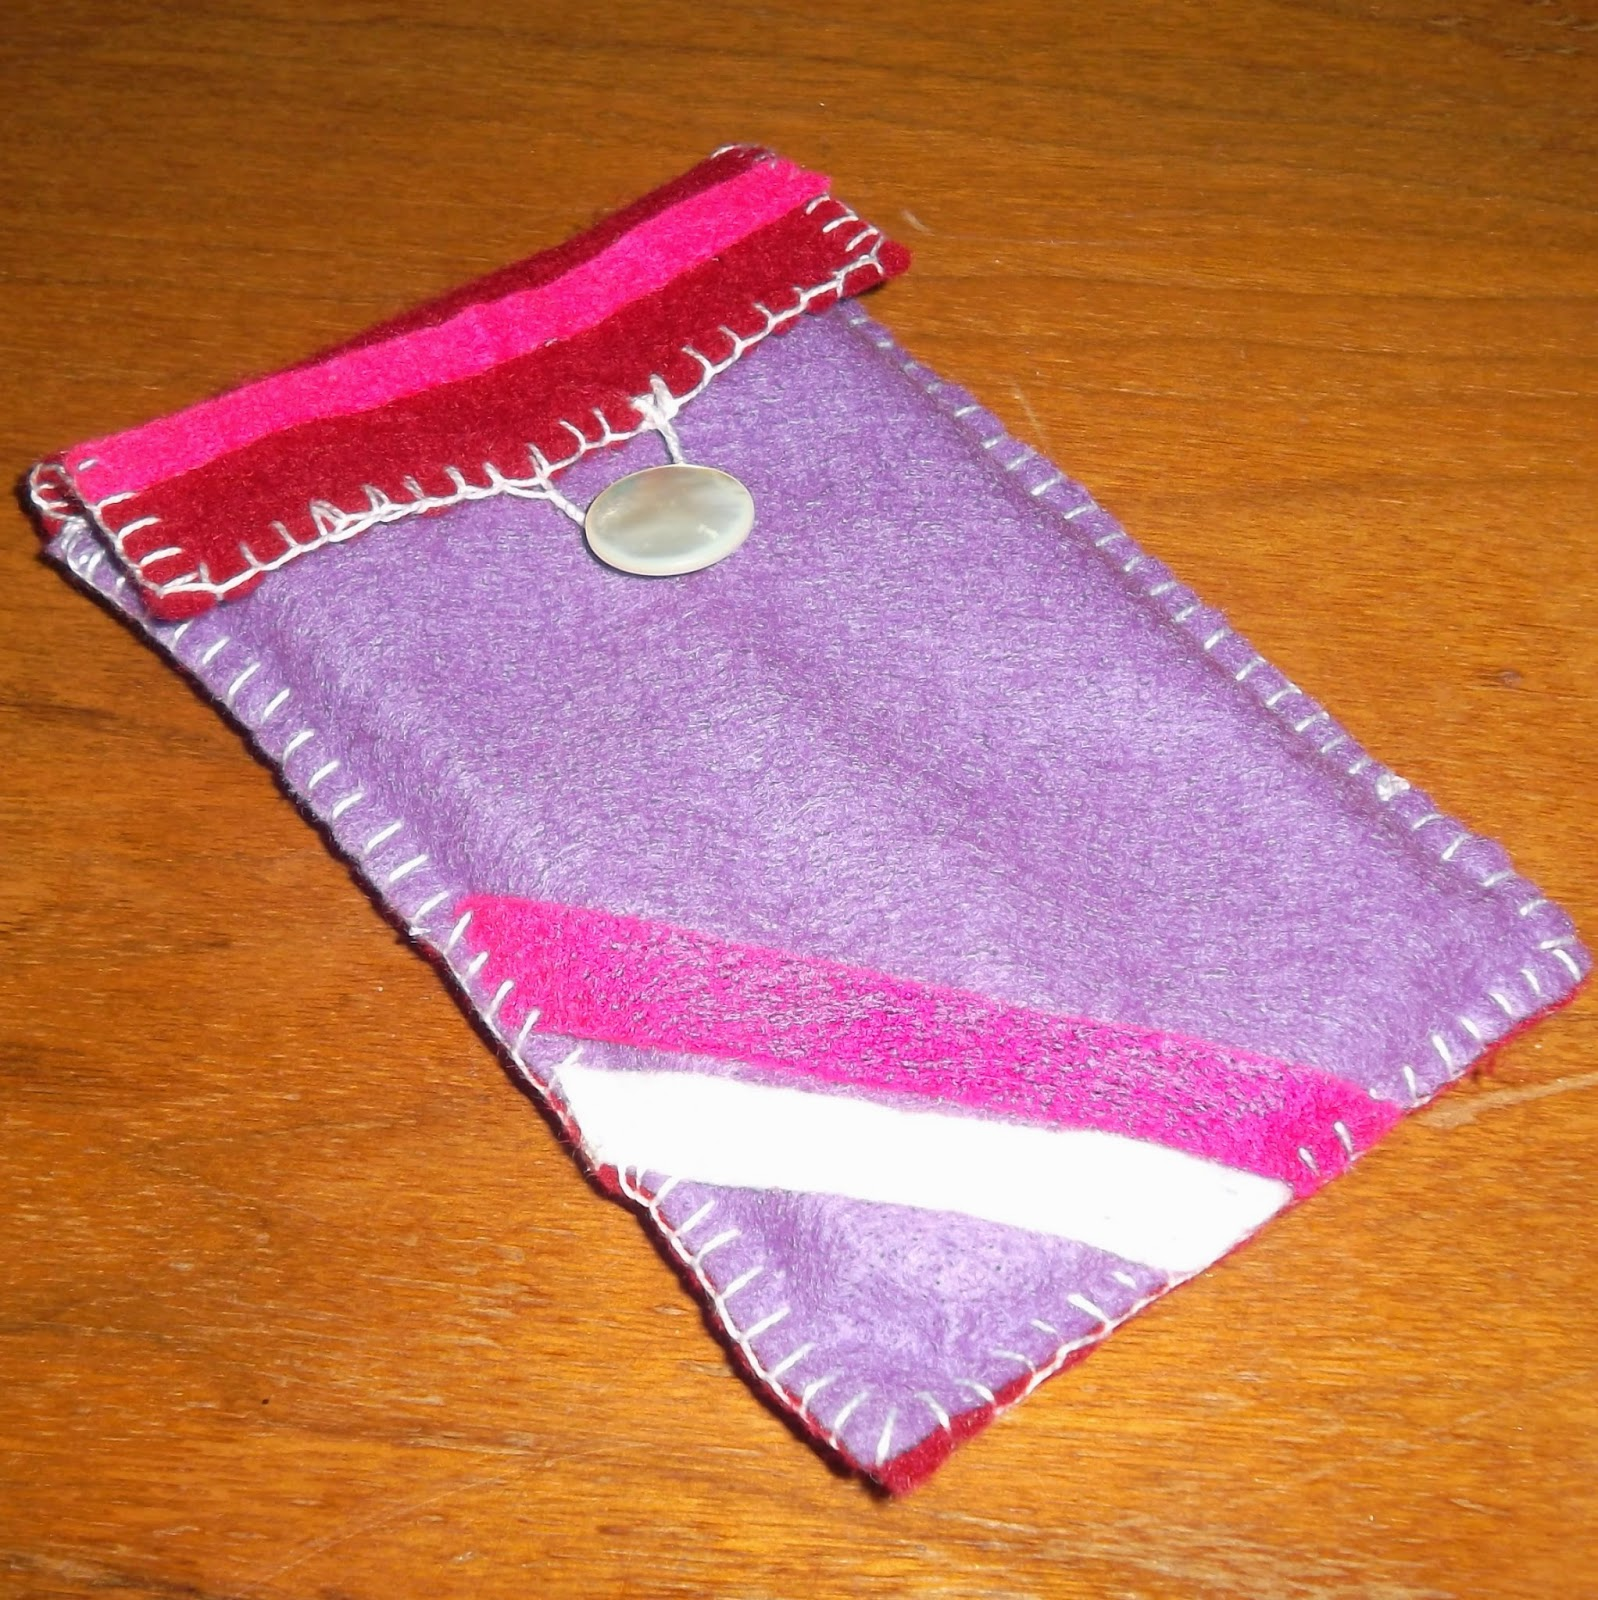 Purple felt pouch with a deep-burgundy flap folded over the top and secured with a white button. The pouch is stitched at bottom and sides with a blanket stitching, which also outlines the edge of the flap and forms a loop for the button closure. The pouch is decorated with two diagonal stripes, in shades of pale and hot pink in the lower left corner of the pouch and with a hot pink stripe across the flap.